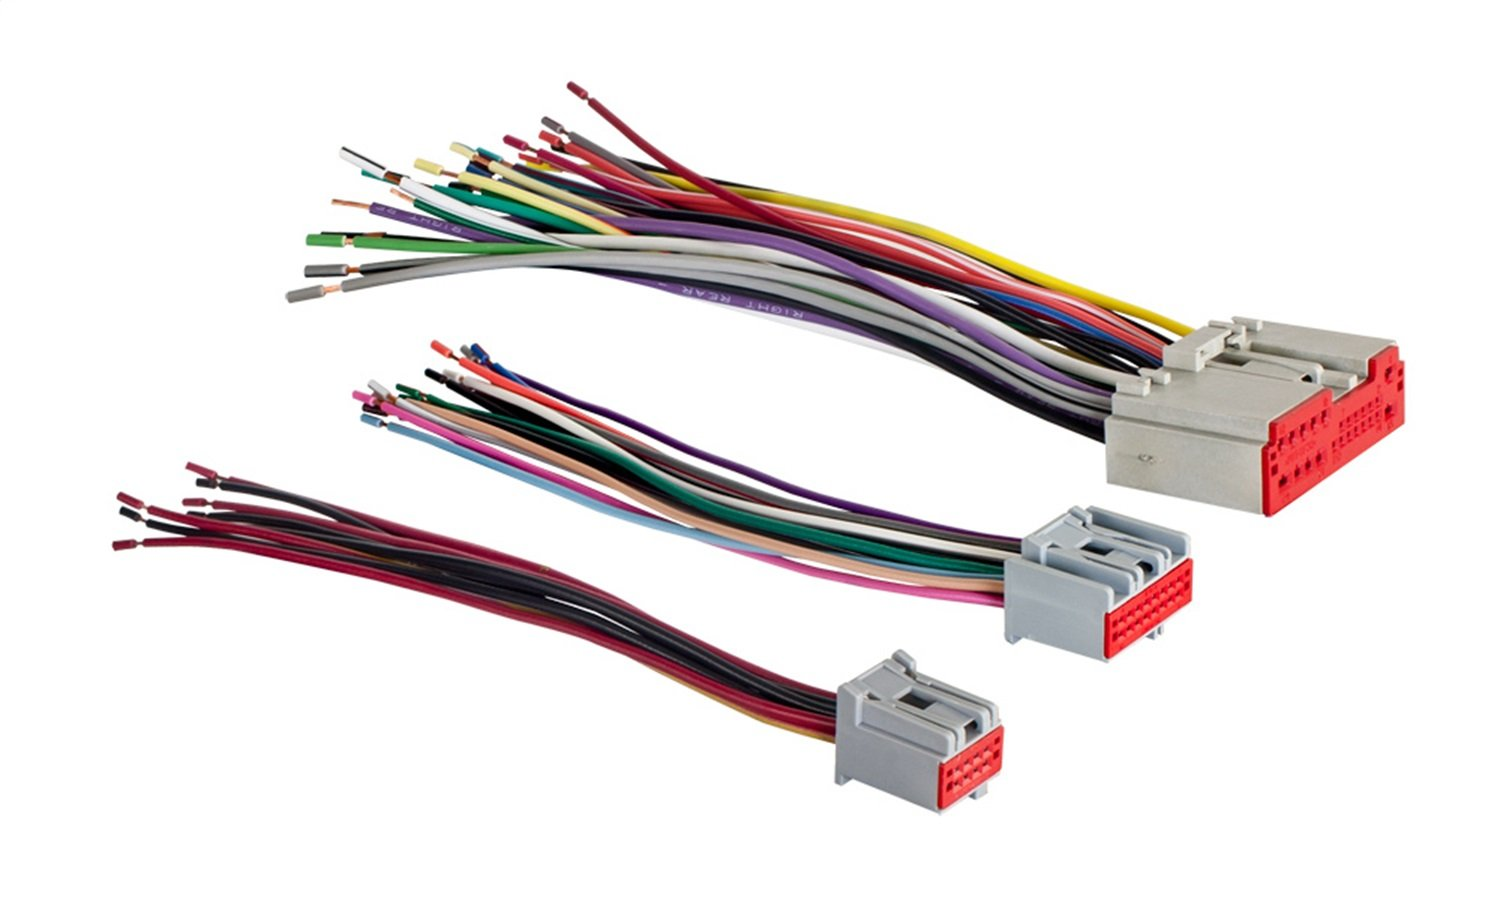 Amazon.com: Metra Reverse Wiring Harness 71-5520-1 for Select 2003-up Ford,  Lincoln, Mercury Vehicles OEM Premium Audio: Cell Phones & Accessories